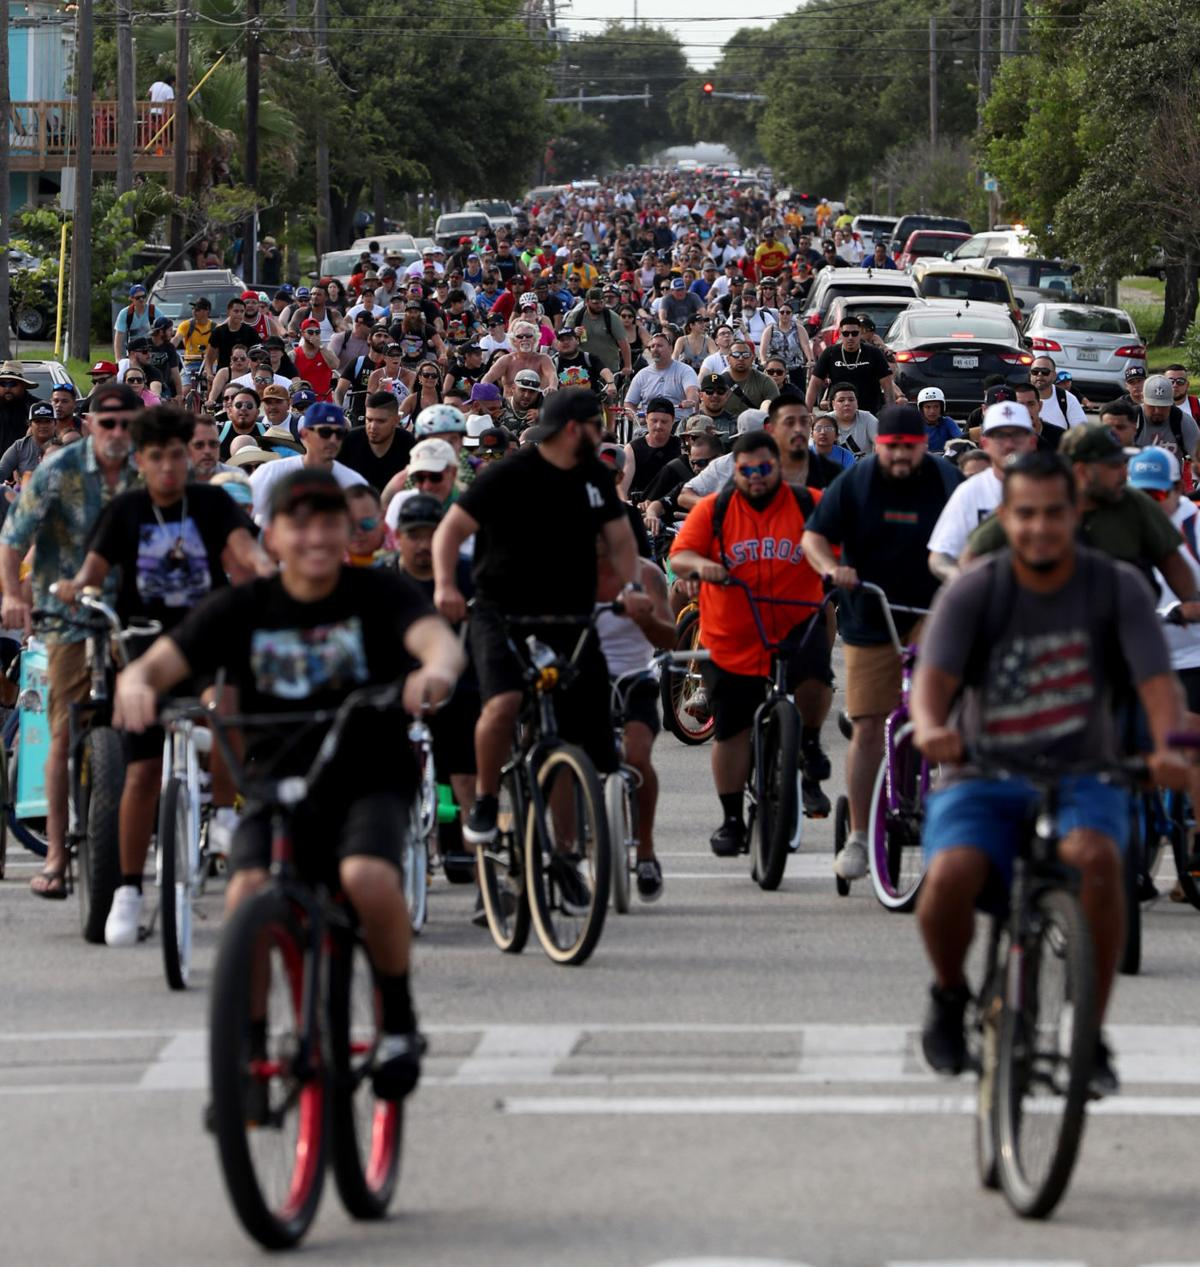 Thousands of cyclists descend on island for ride out